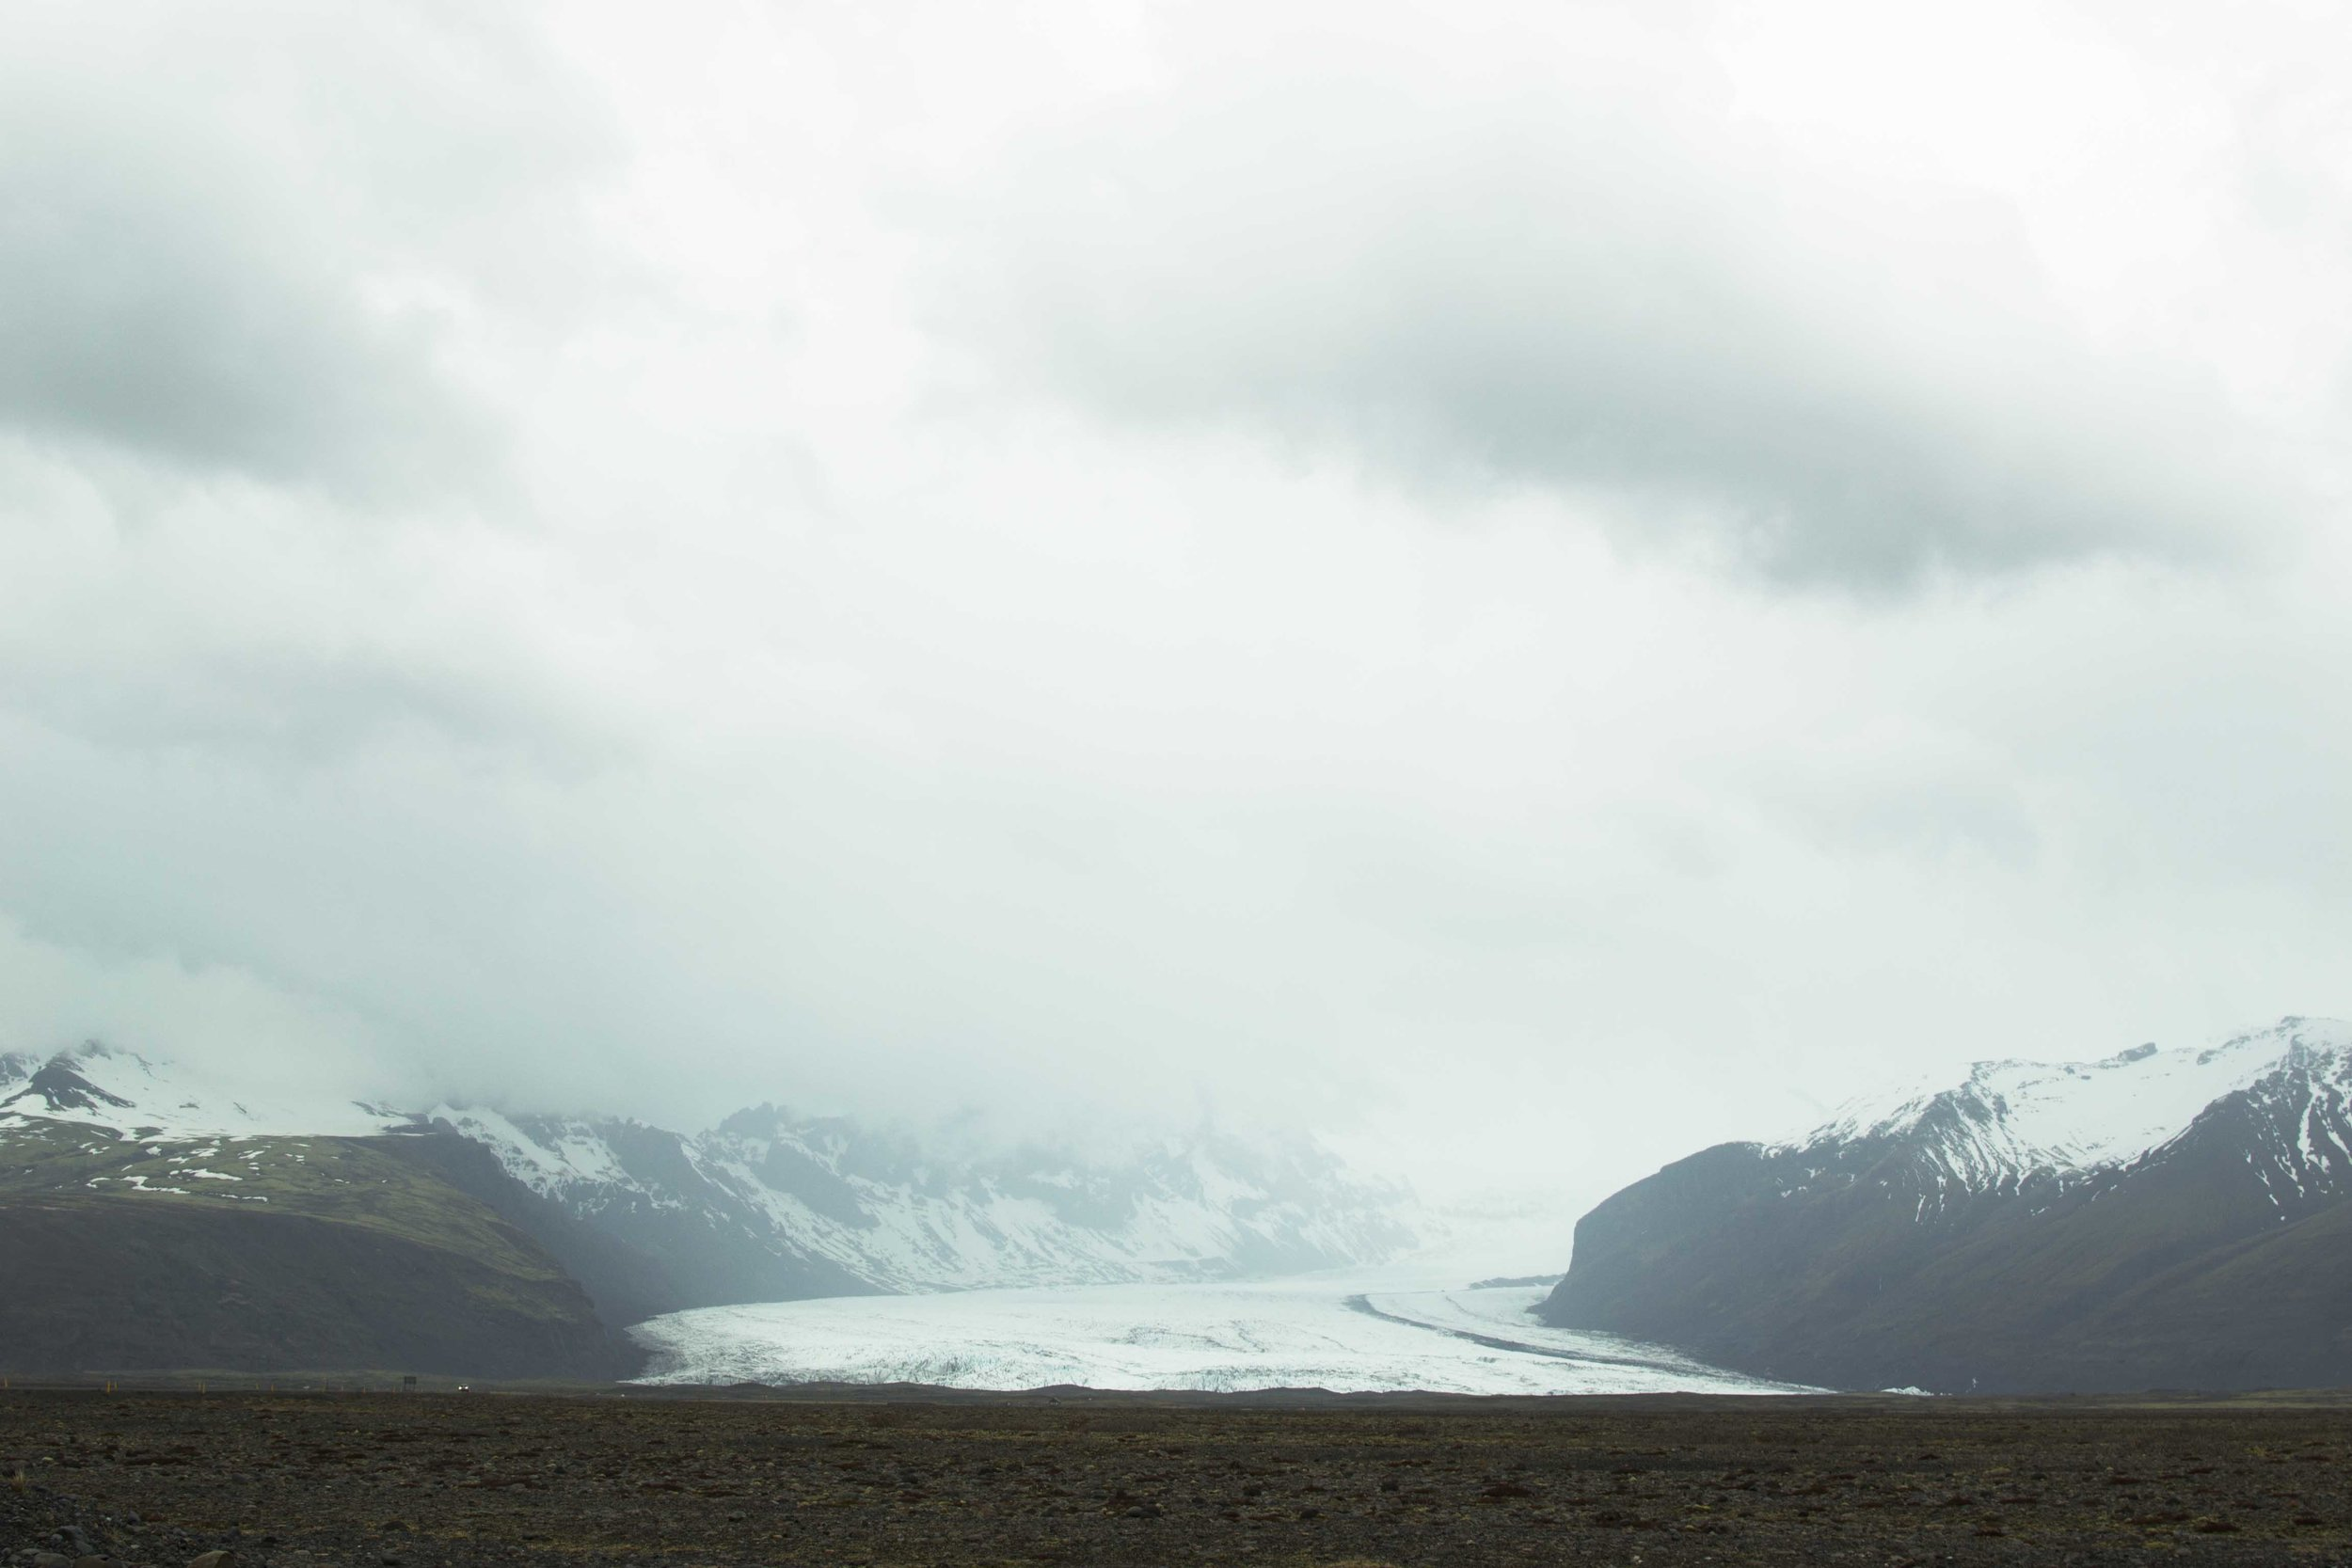 Vatnajökull as seen from the road-side.  It is the largest glacier in Iceland, the largest in Europe.